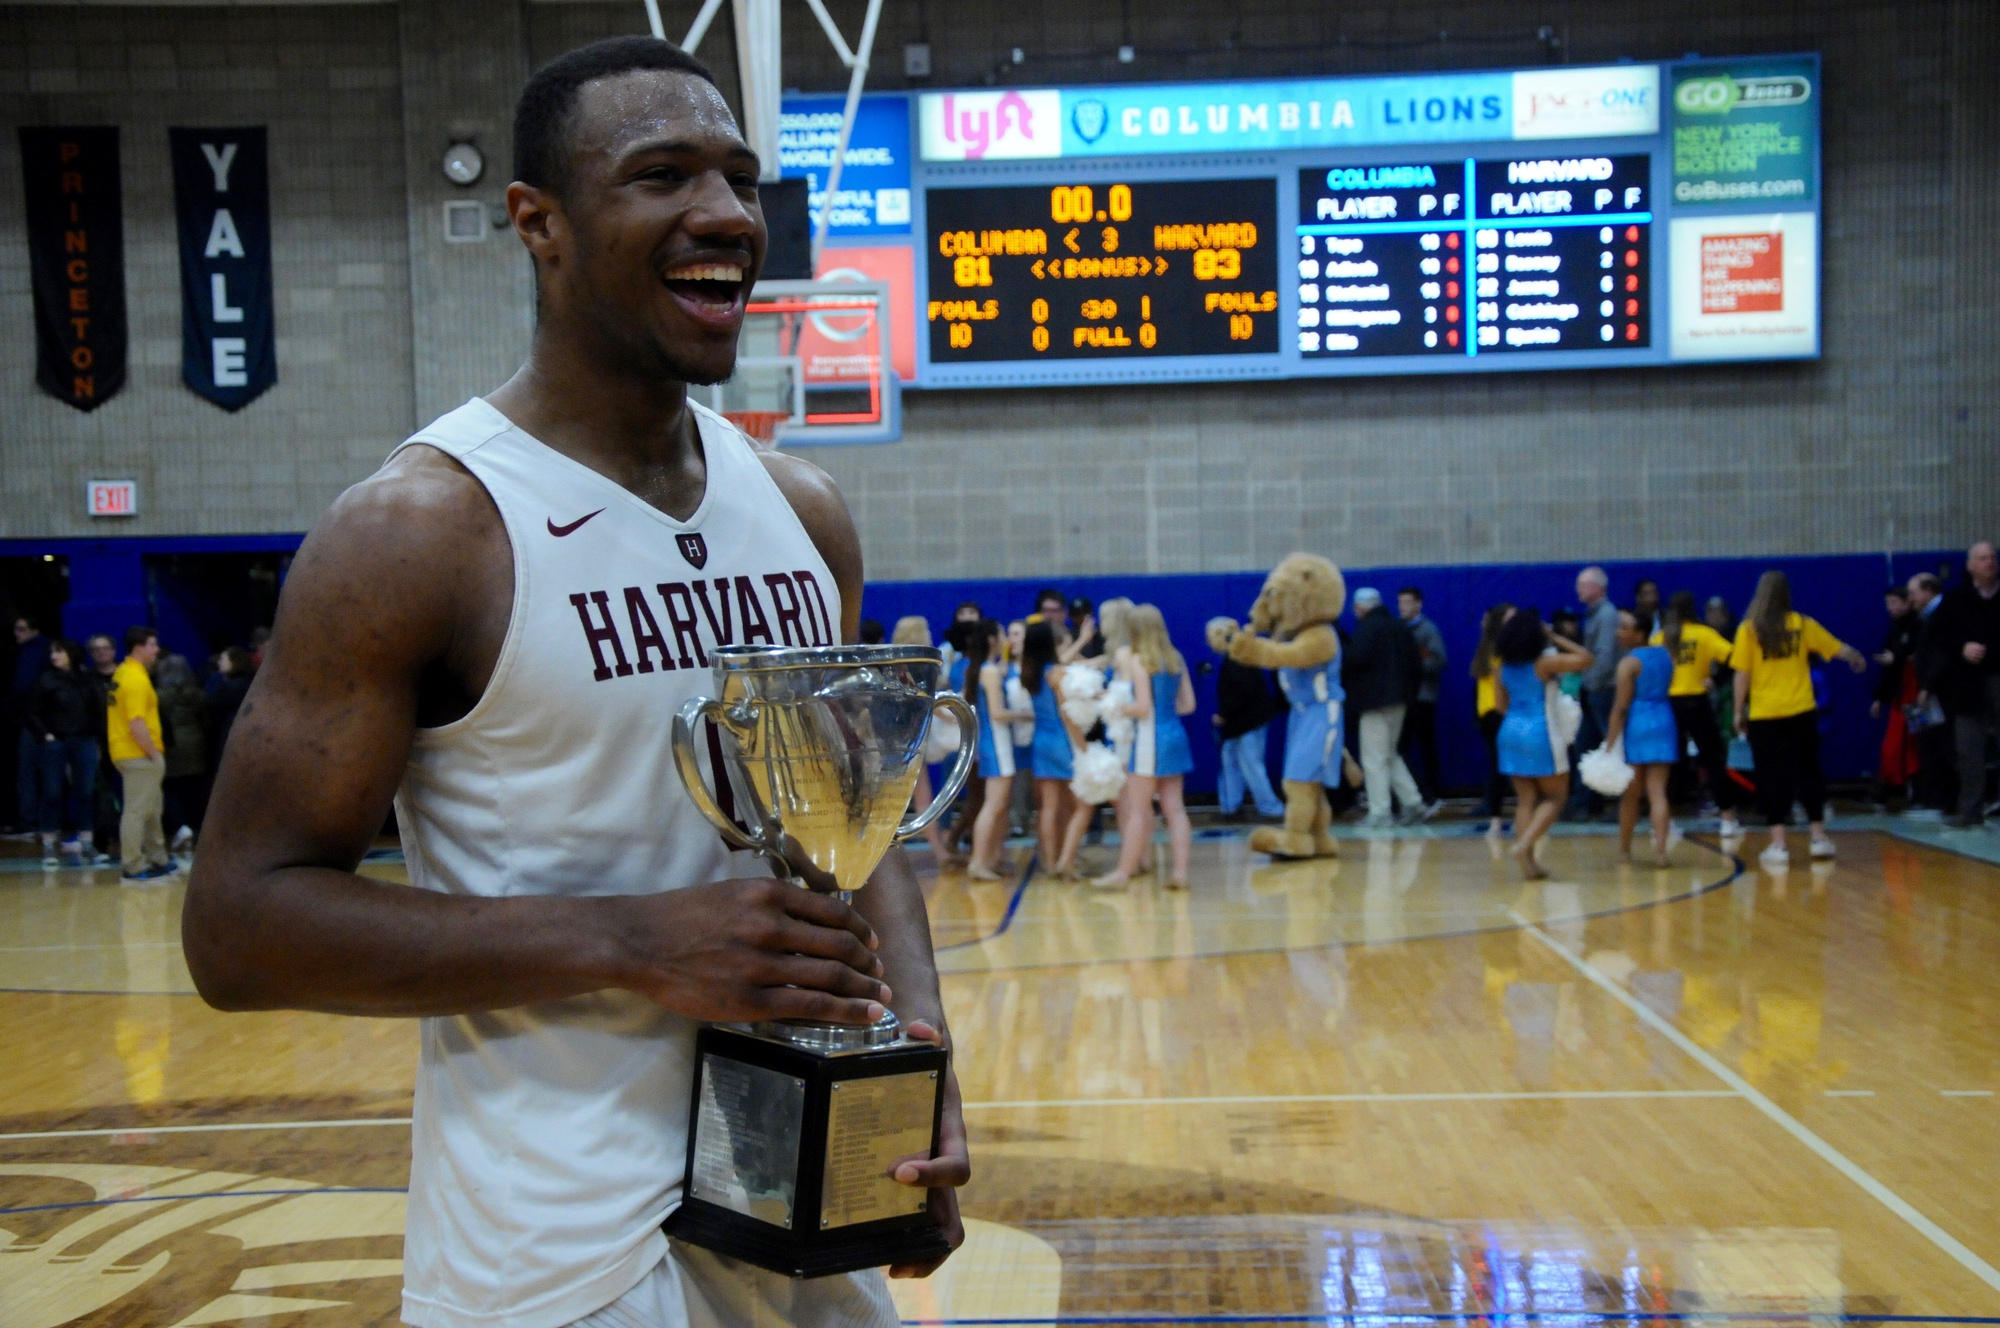 Junior big Chris Lewis was all smiles as he held the championship trophy.